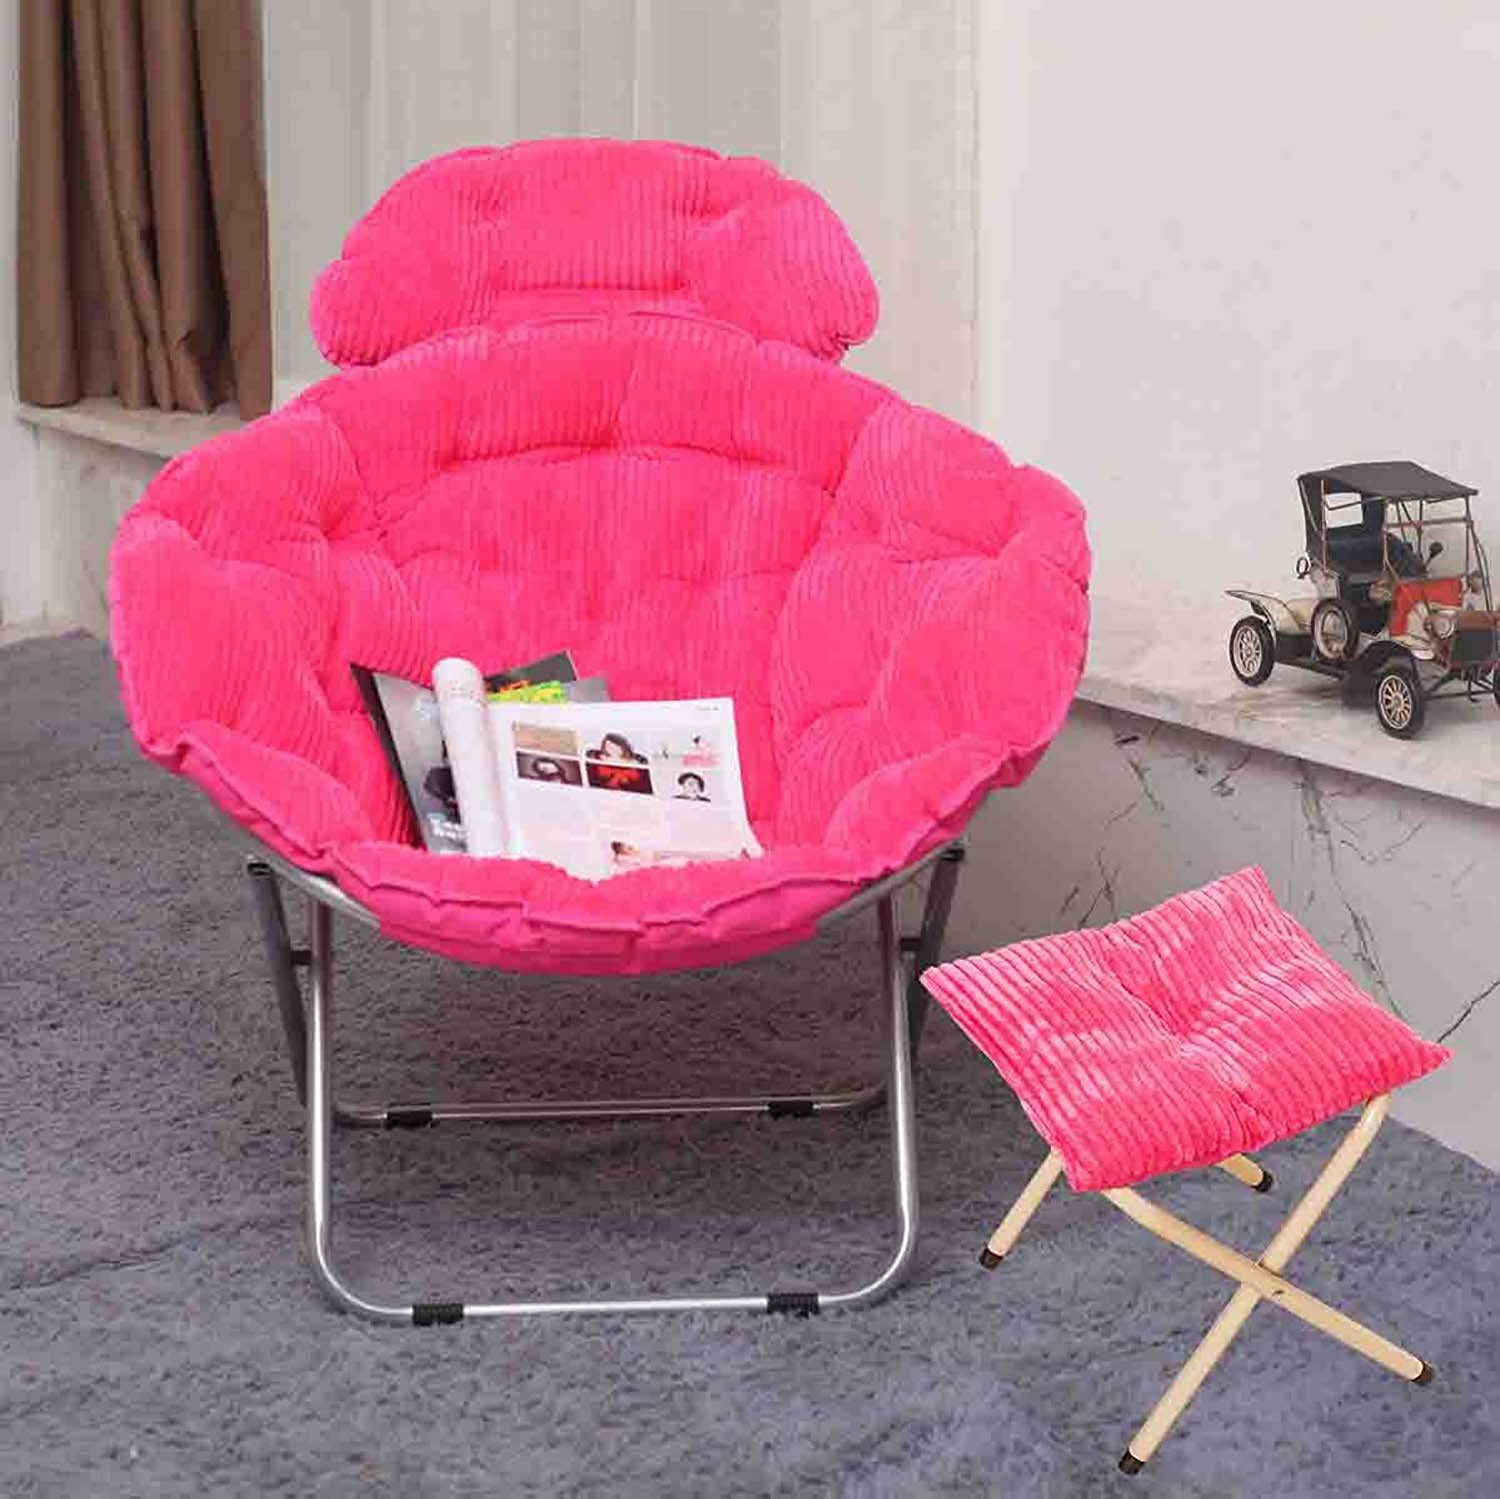 Folding Chair Large Adult Moon Chair Sun Chair Butterfly Chair Lazy Chair Radar Chair Recliner Folding Chair Round Chair Sofa Chair Folding Chairs Beach Chairs (color   pink red)